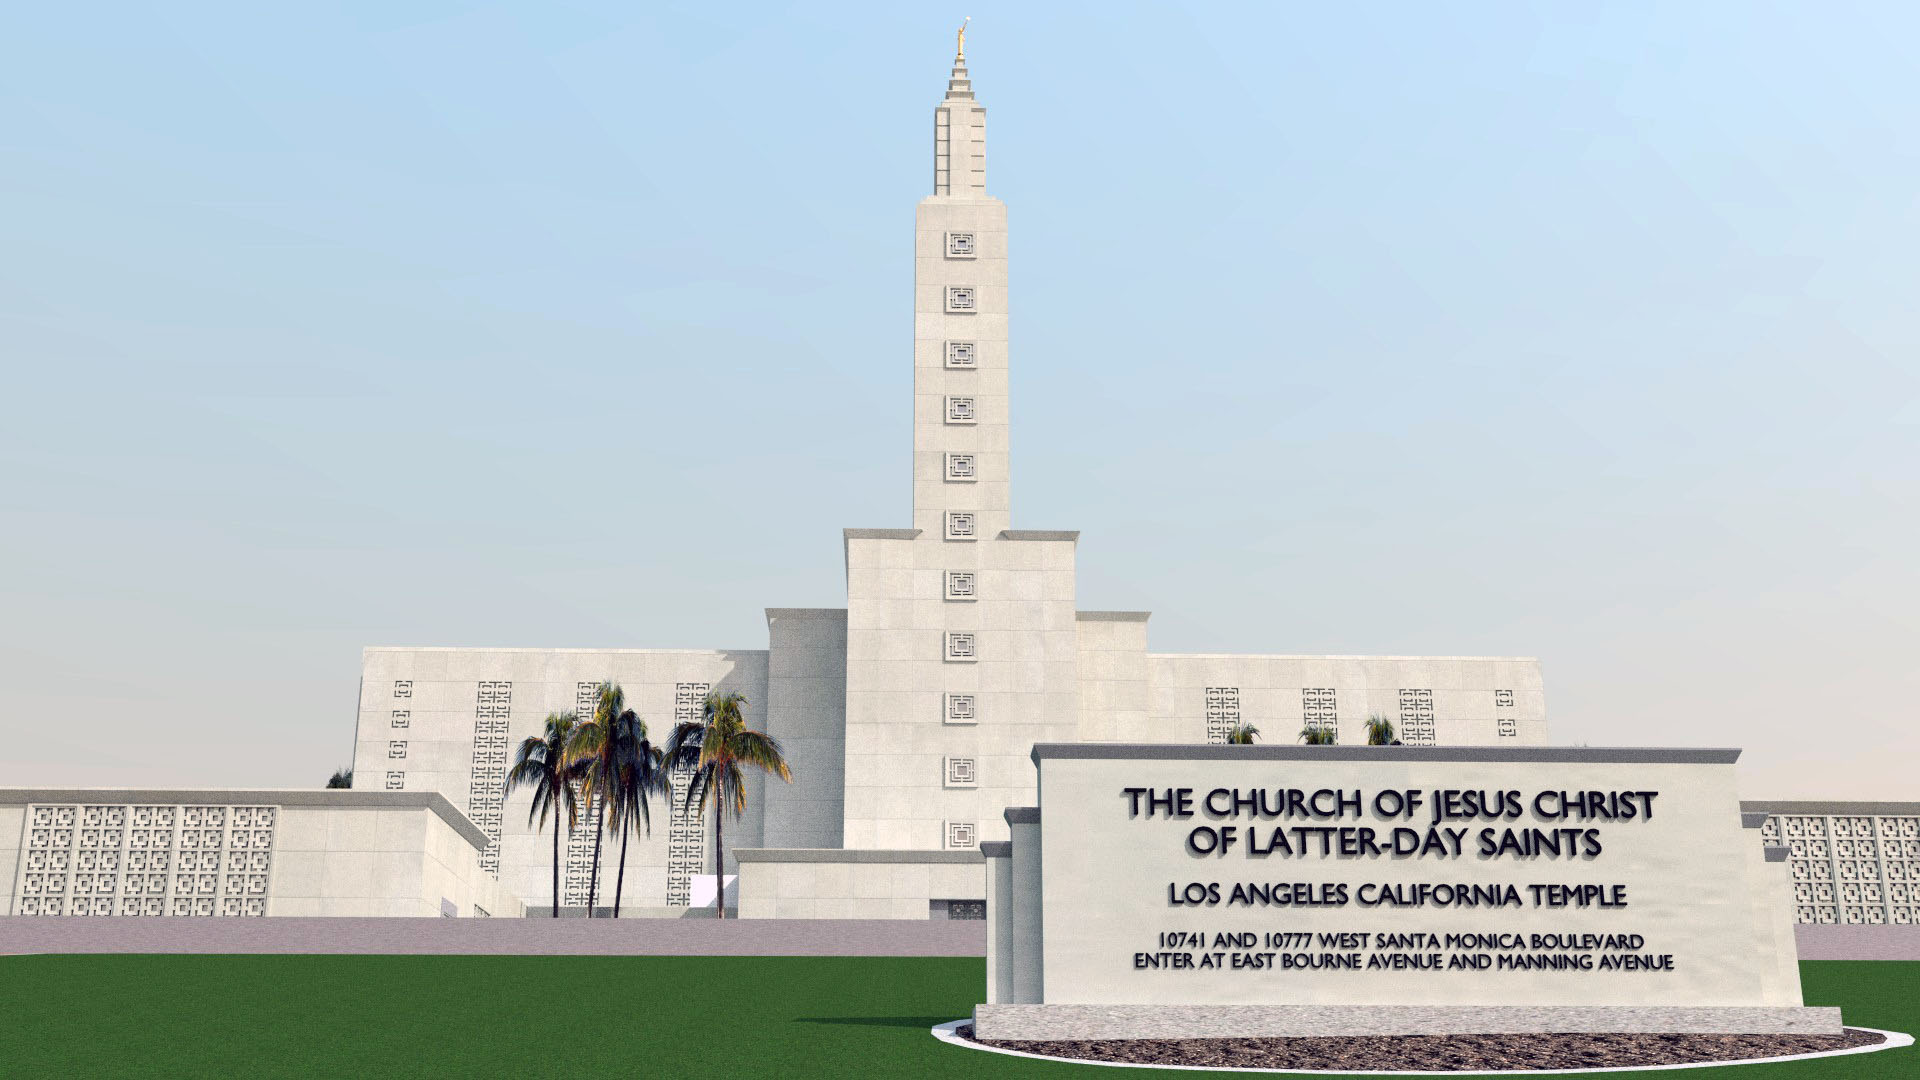 Los Angeles California Temple image